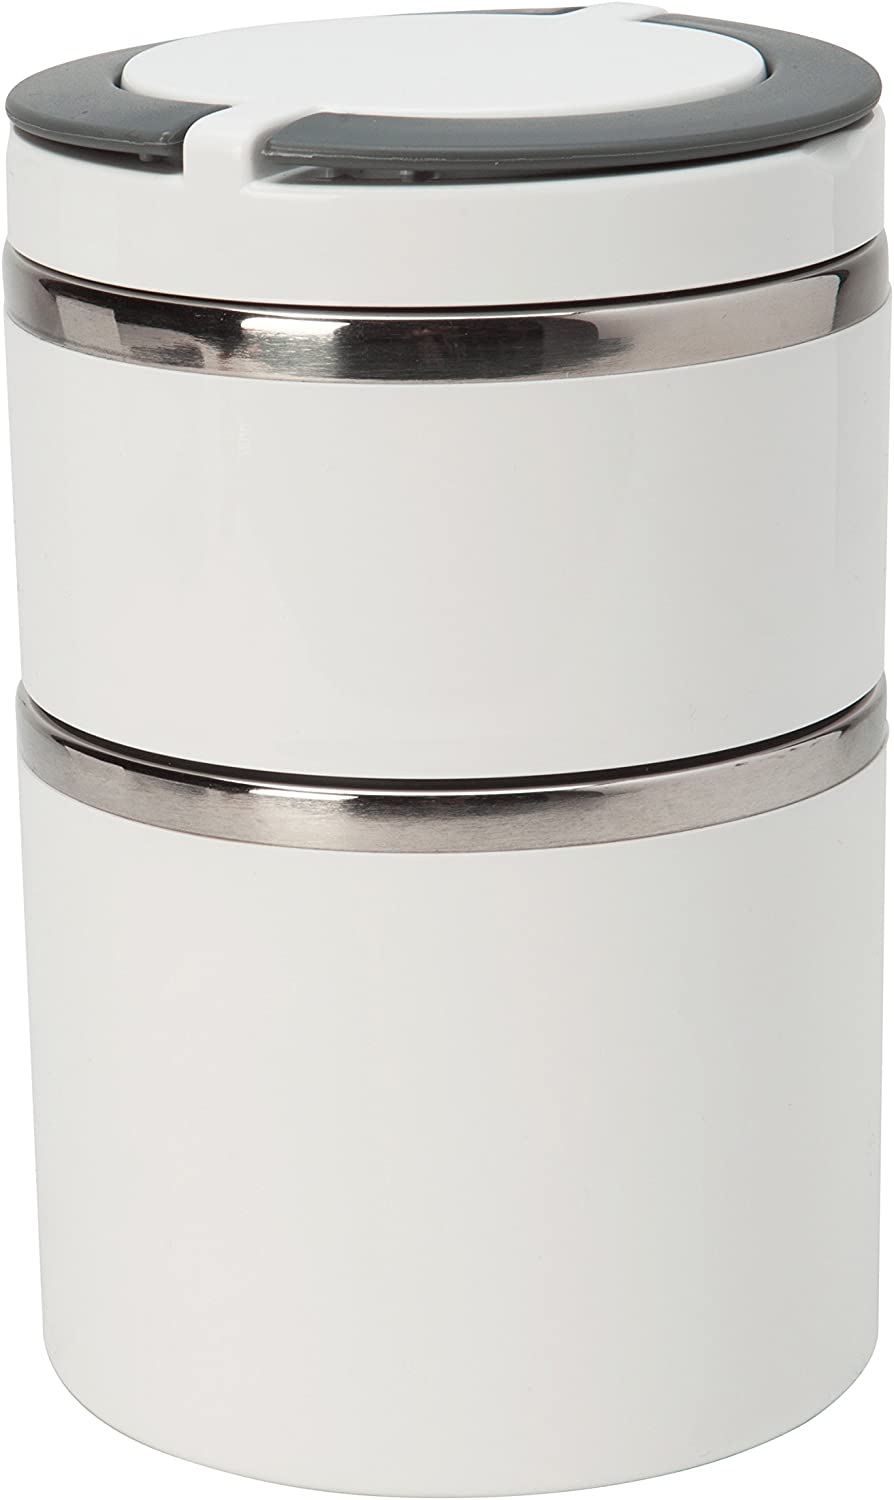 Kitchen Details 2 Tier Round Stainless Steel White Twist Open Insulated Lunch Box Container Thermos, Good for Soup and Hot Food